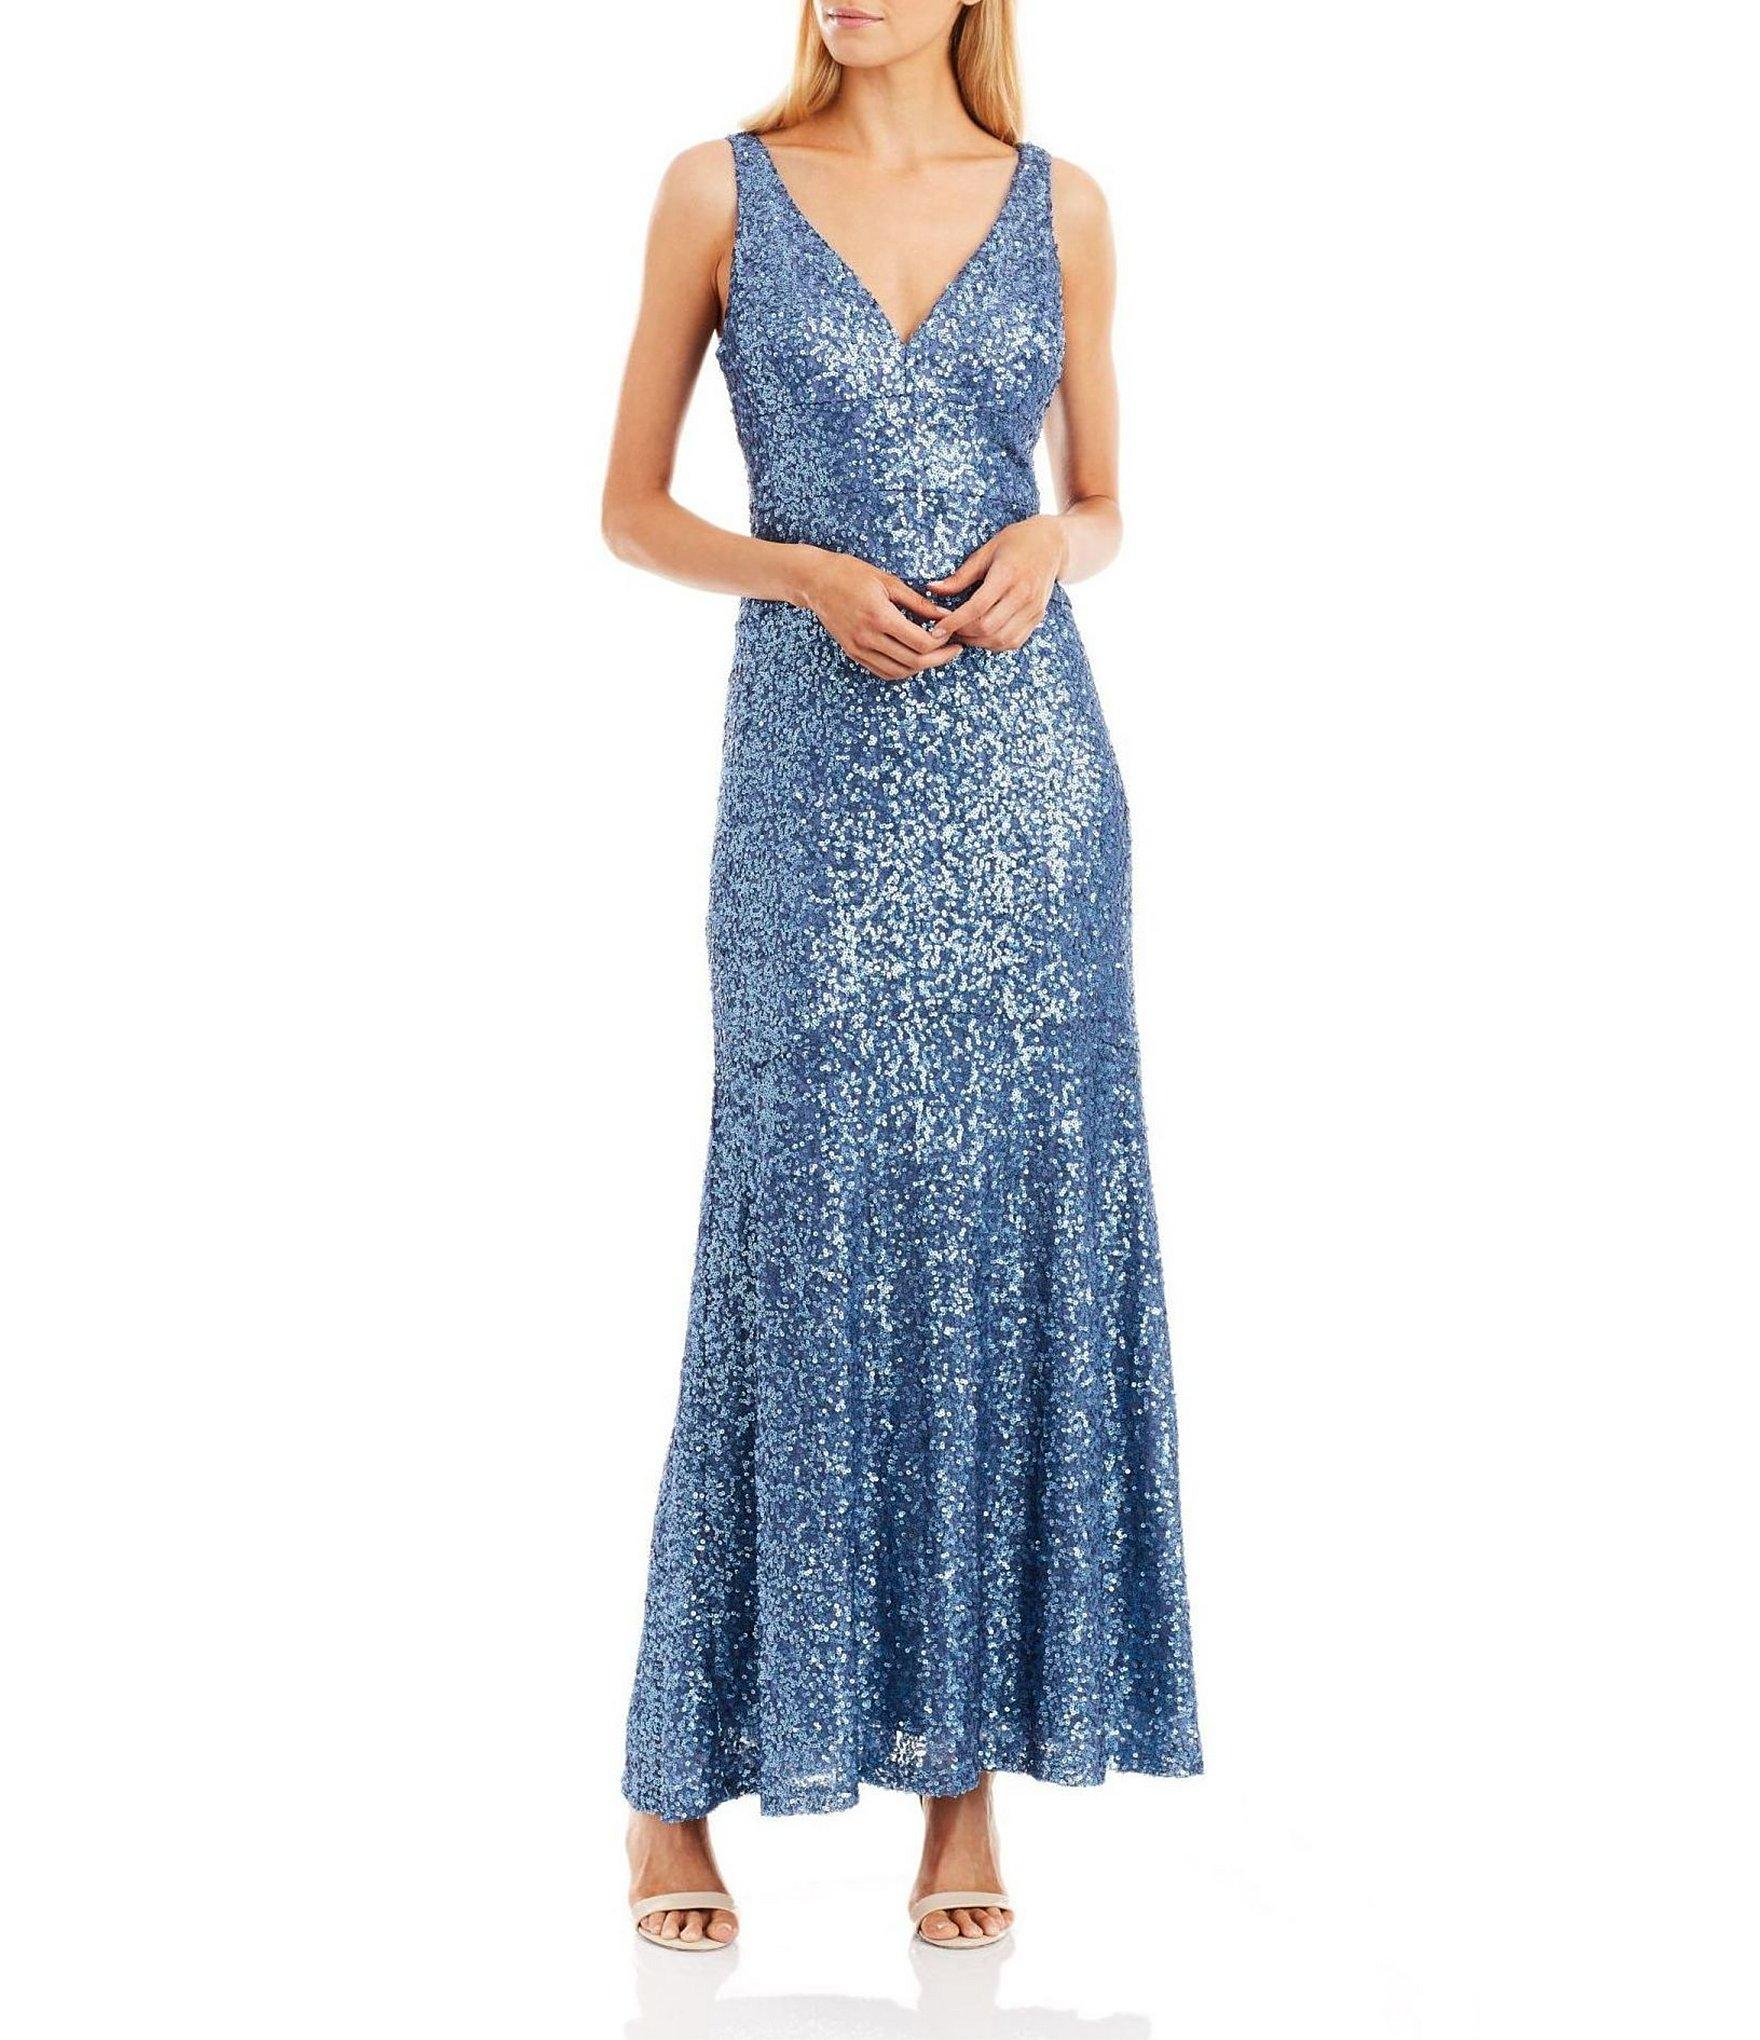 Blue Periwinkle Nicole Miller New York Sequin Gown, Size 6 – Dressed